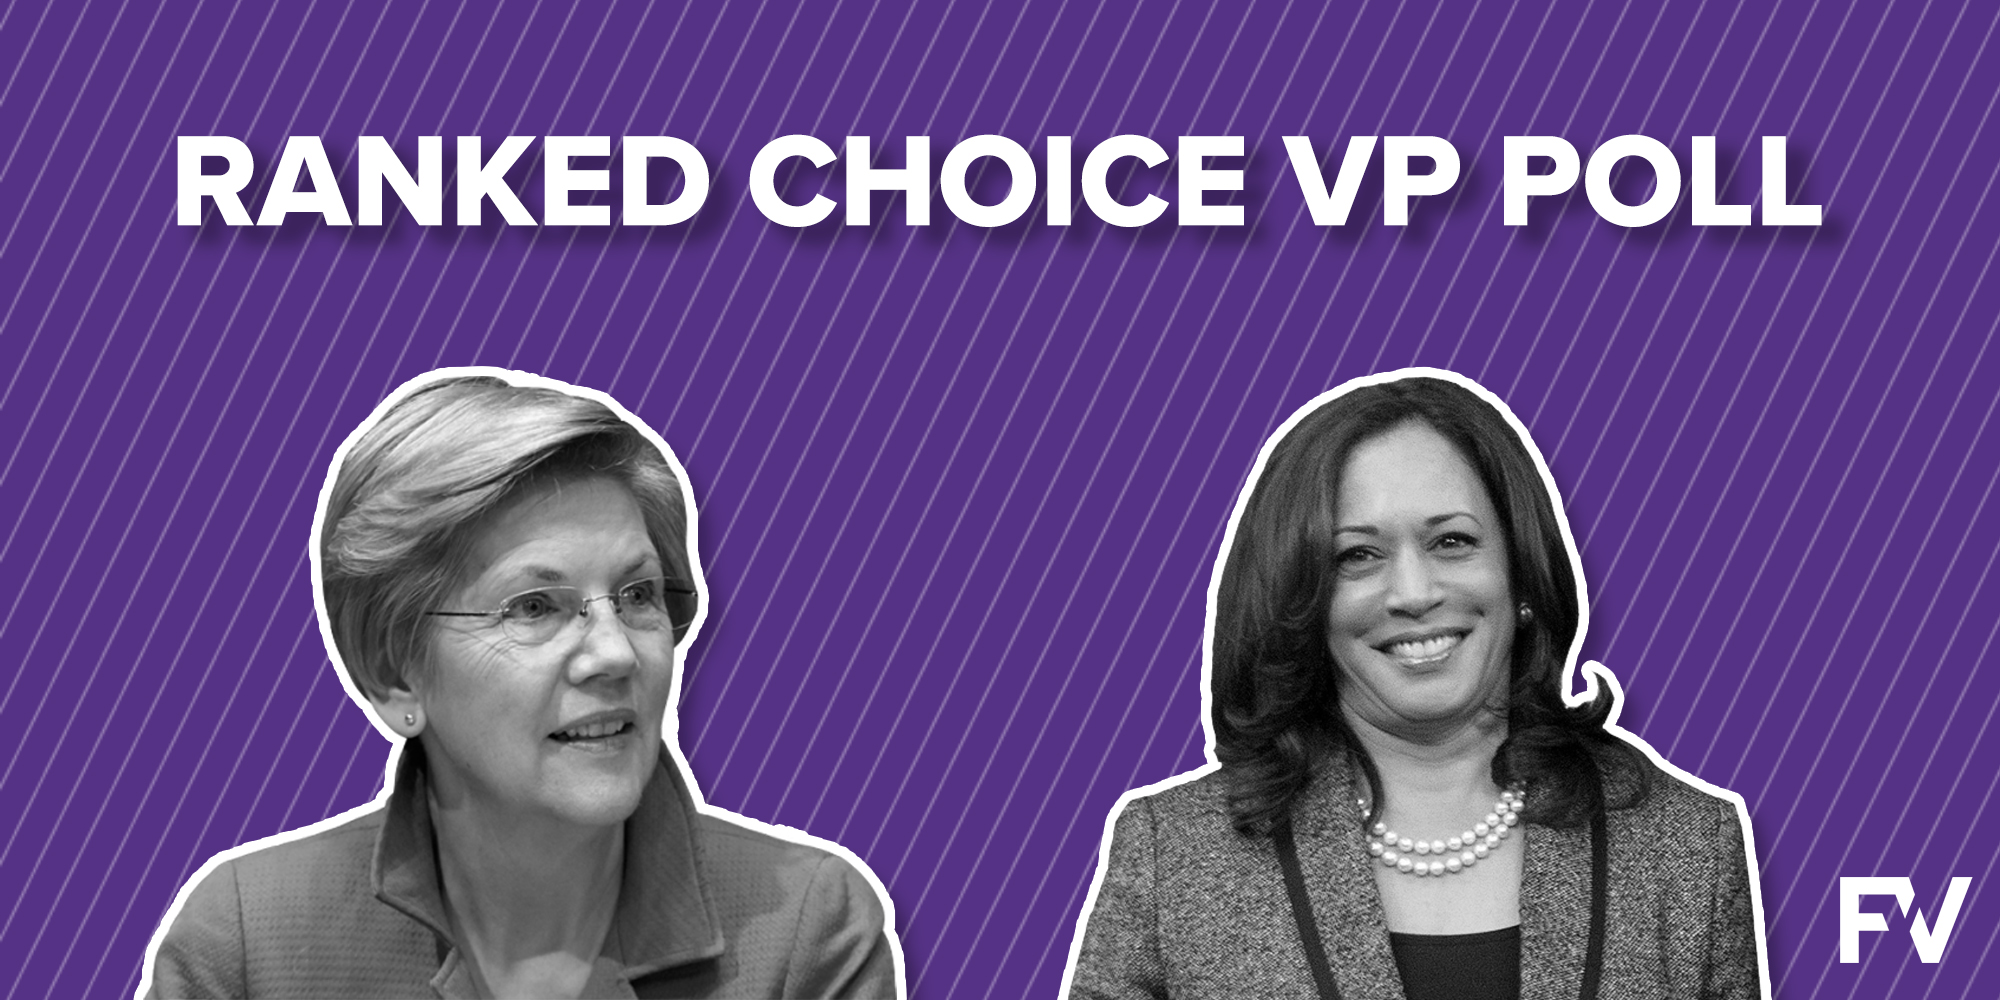 Ranked choice Vice Presidential poll shows value of polling voters' ranked preferences